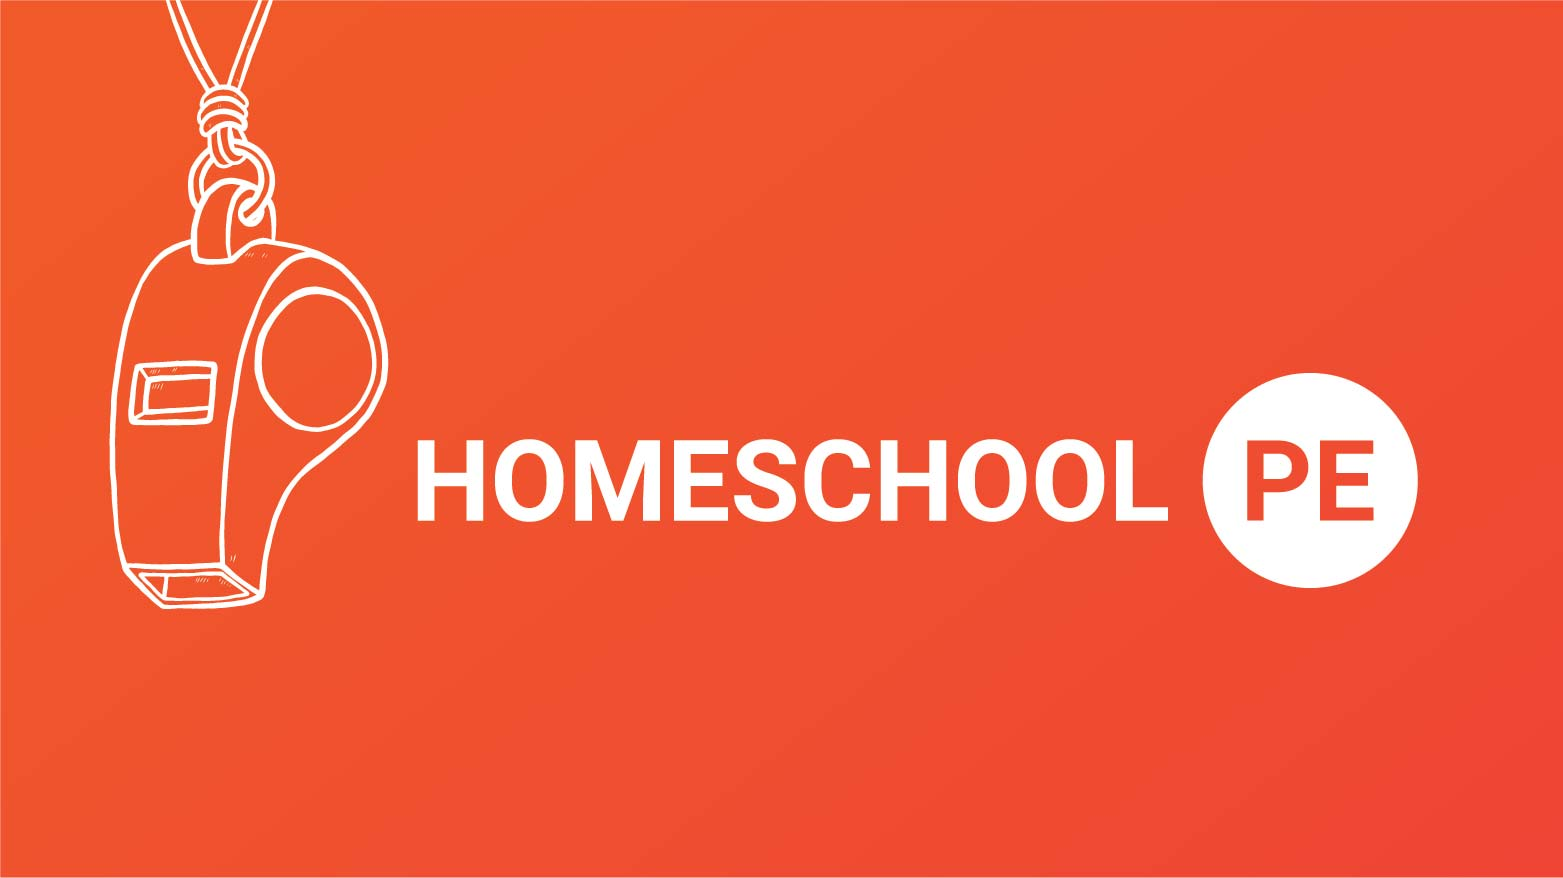 Homeschool P.E.- CANCELLED